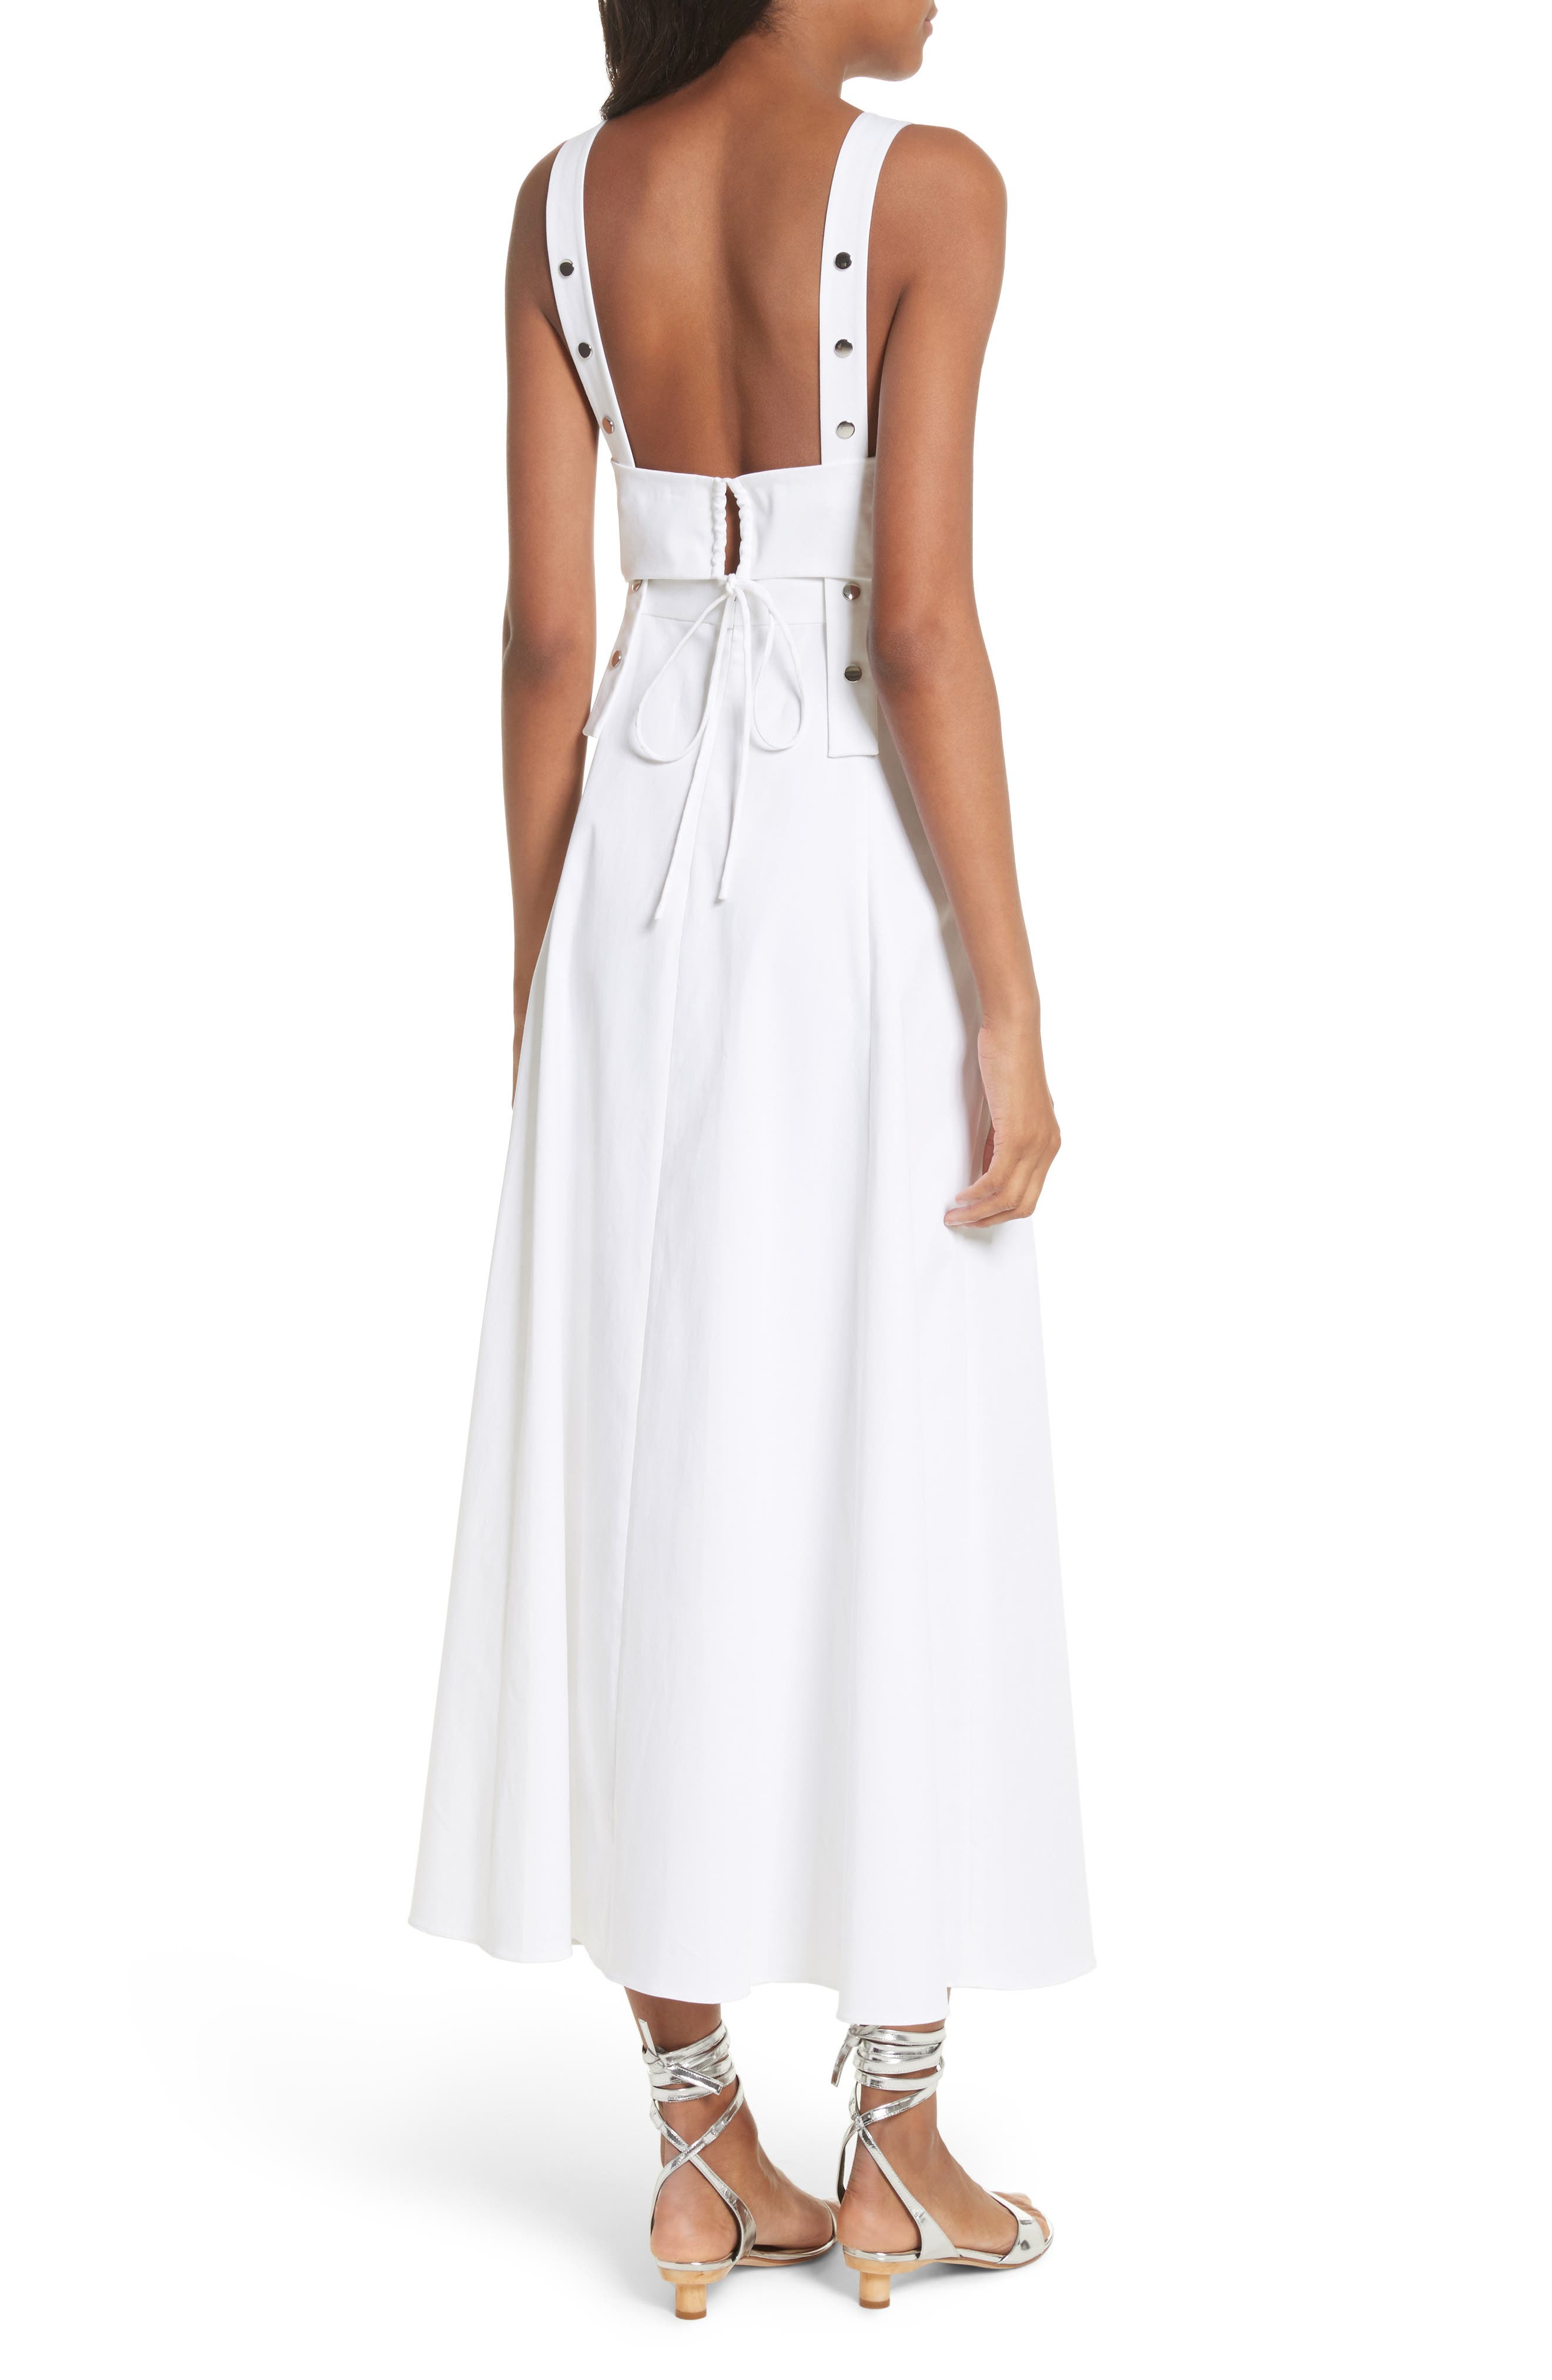 Crosby Snap Strappy Dress,                             Alternate thumbnail 2, color,                             100